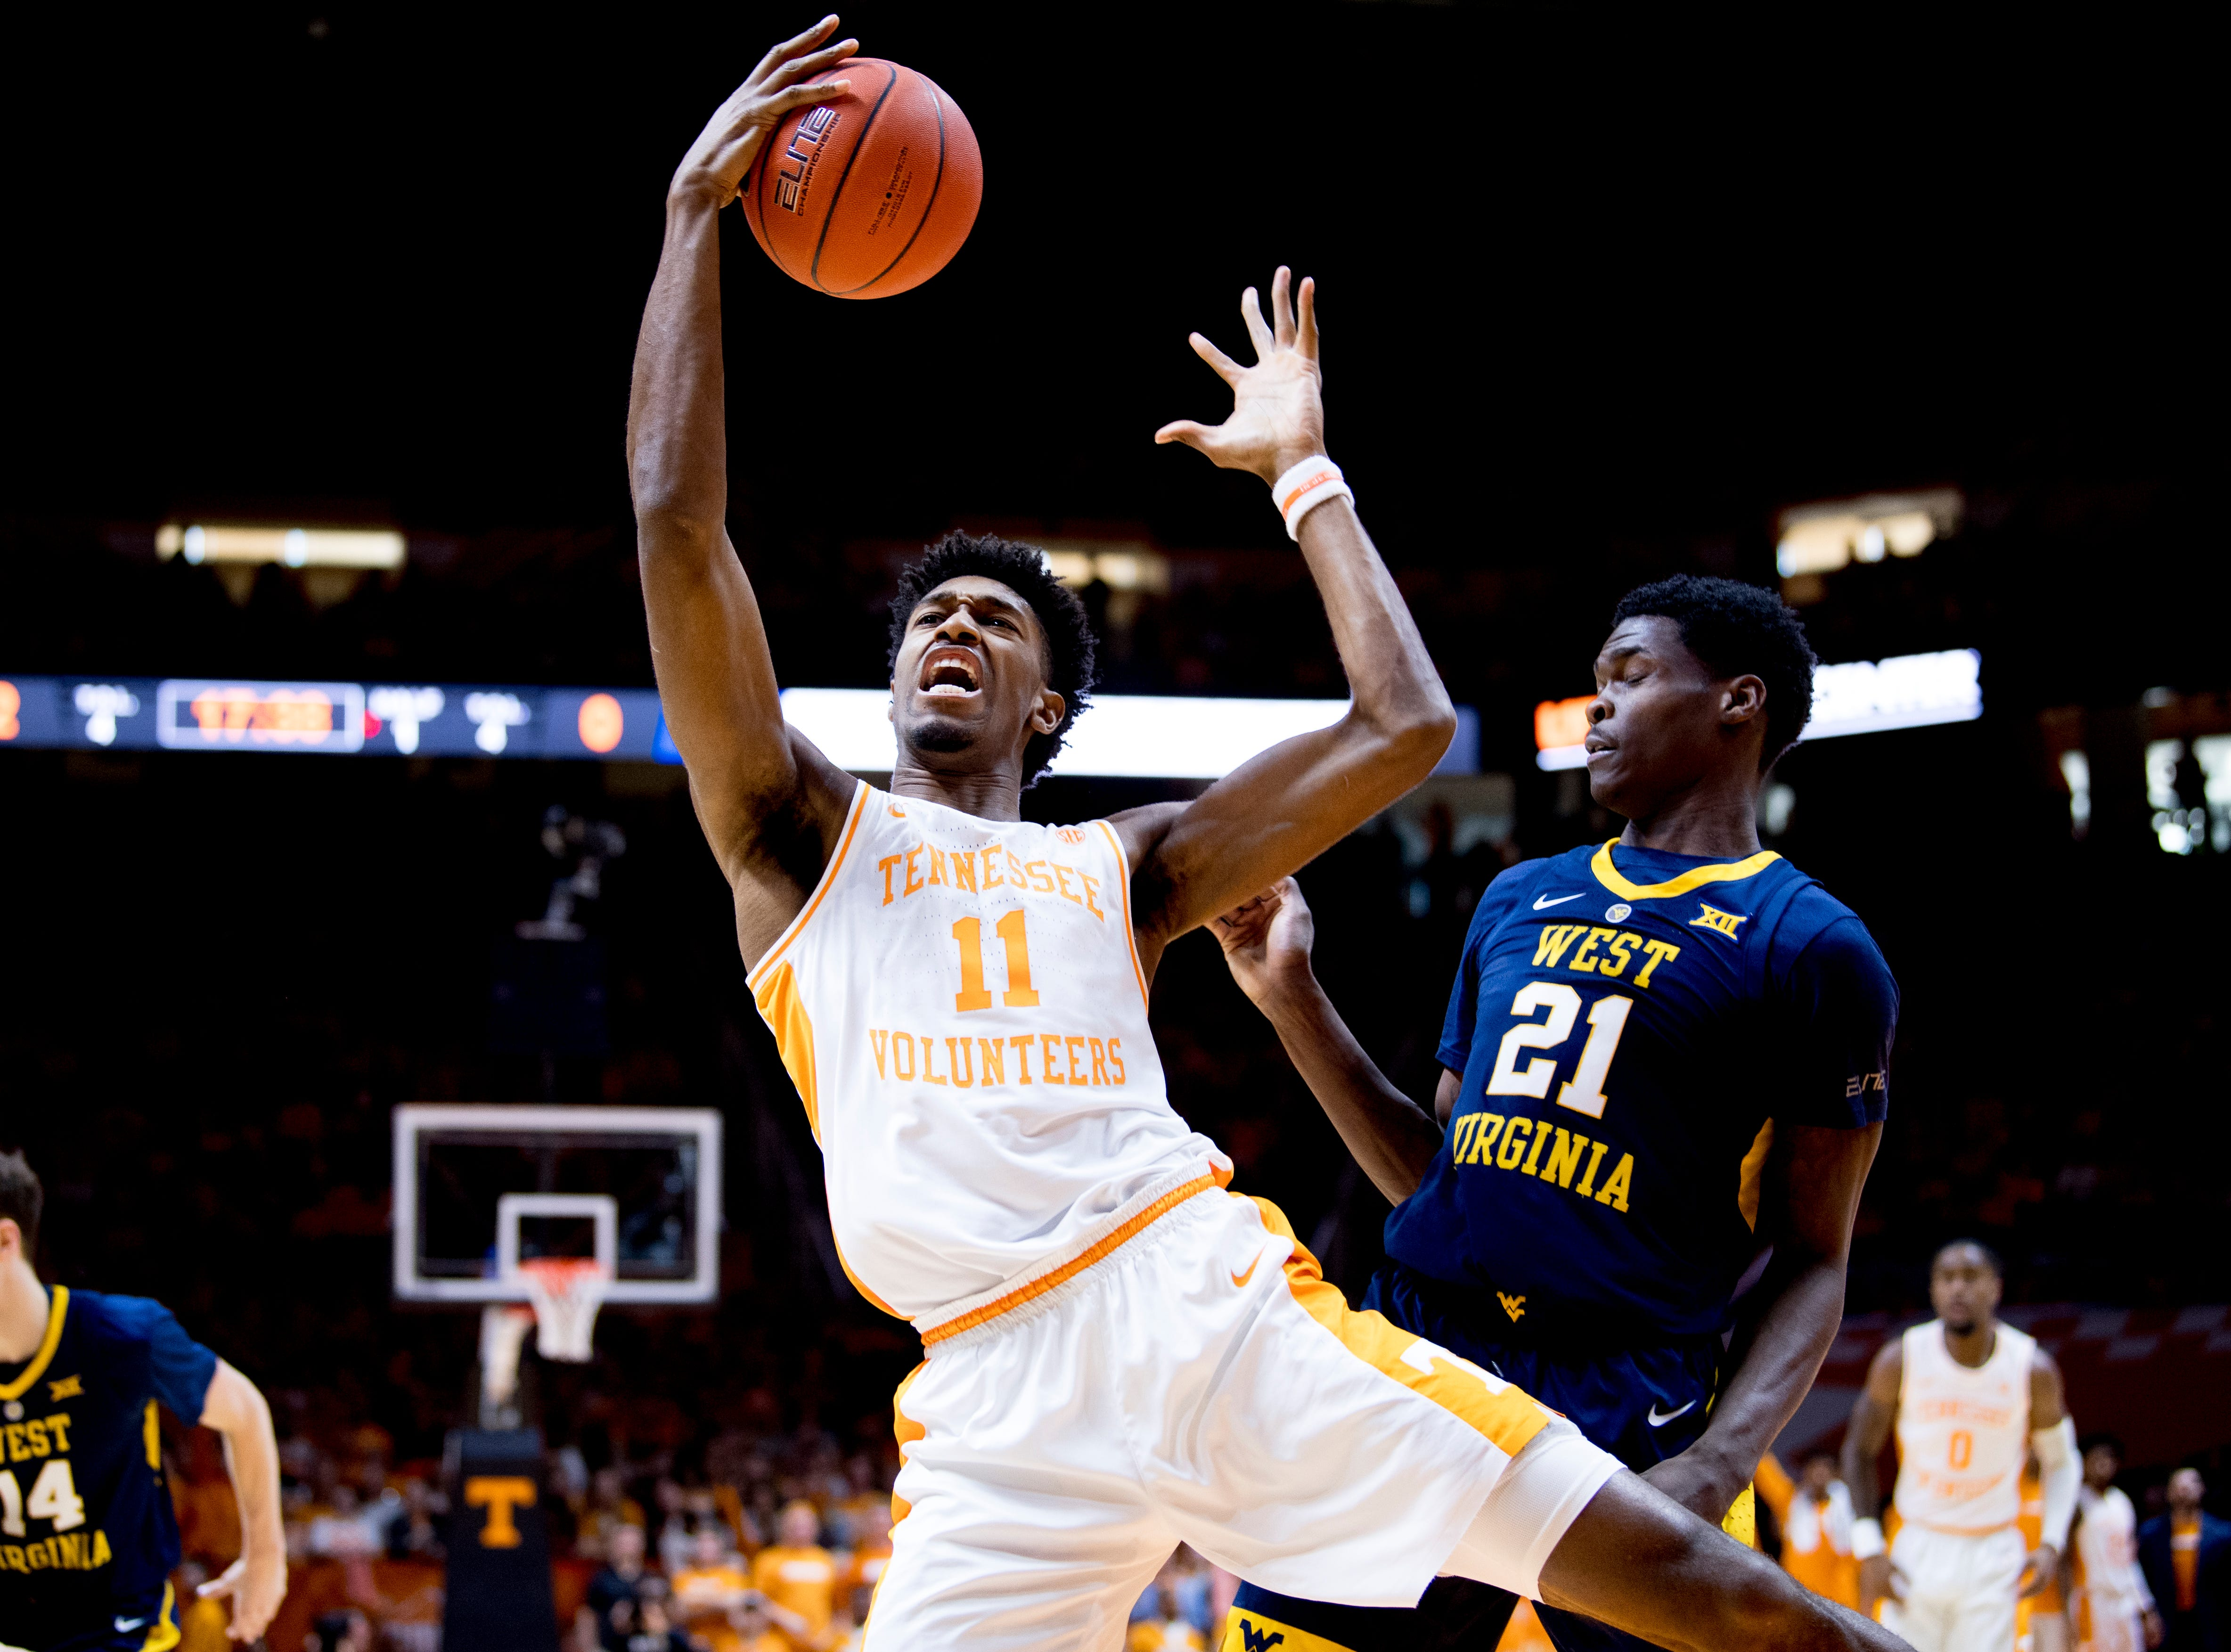 Tennessee forward Kyle Alexander (11)  grabs the rebound ball during a SEC/Big 12 Challenge game between Tennessee and West Virginia at Thompson-Boling Arena in Knoxville, Tennessee on Saturday, January 26, 2019.